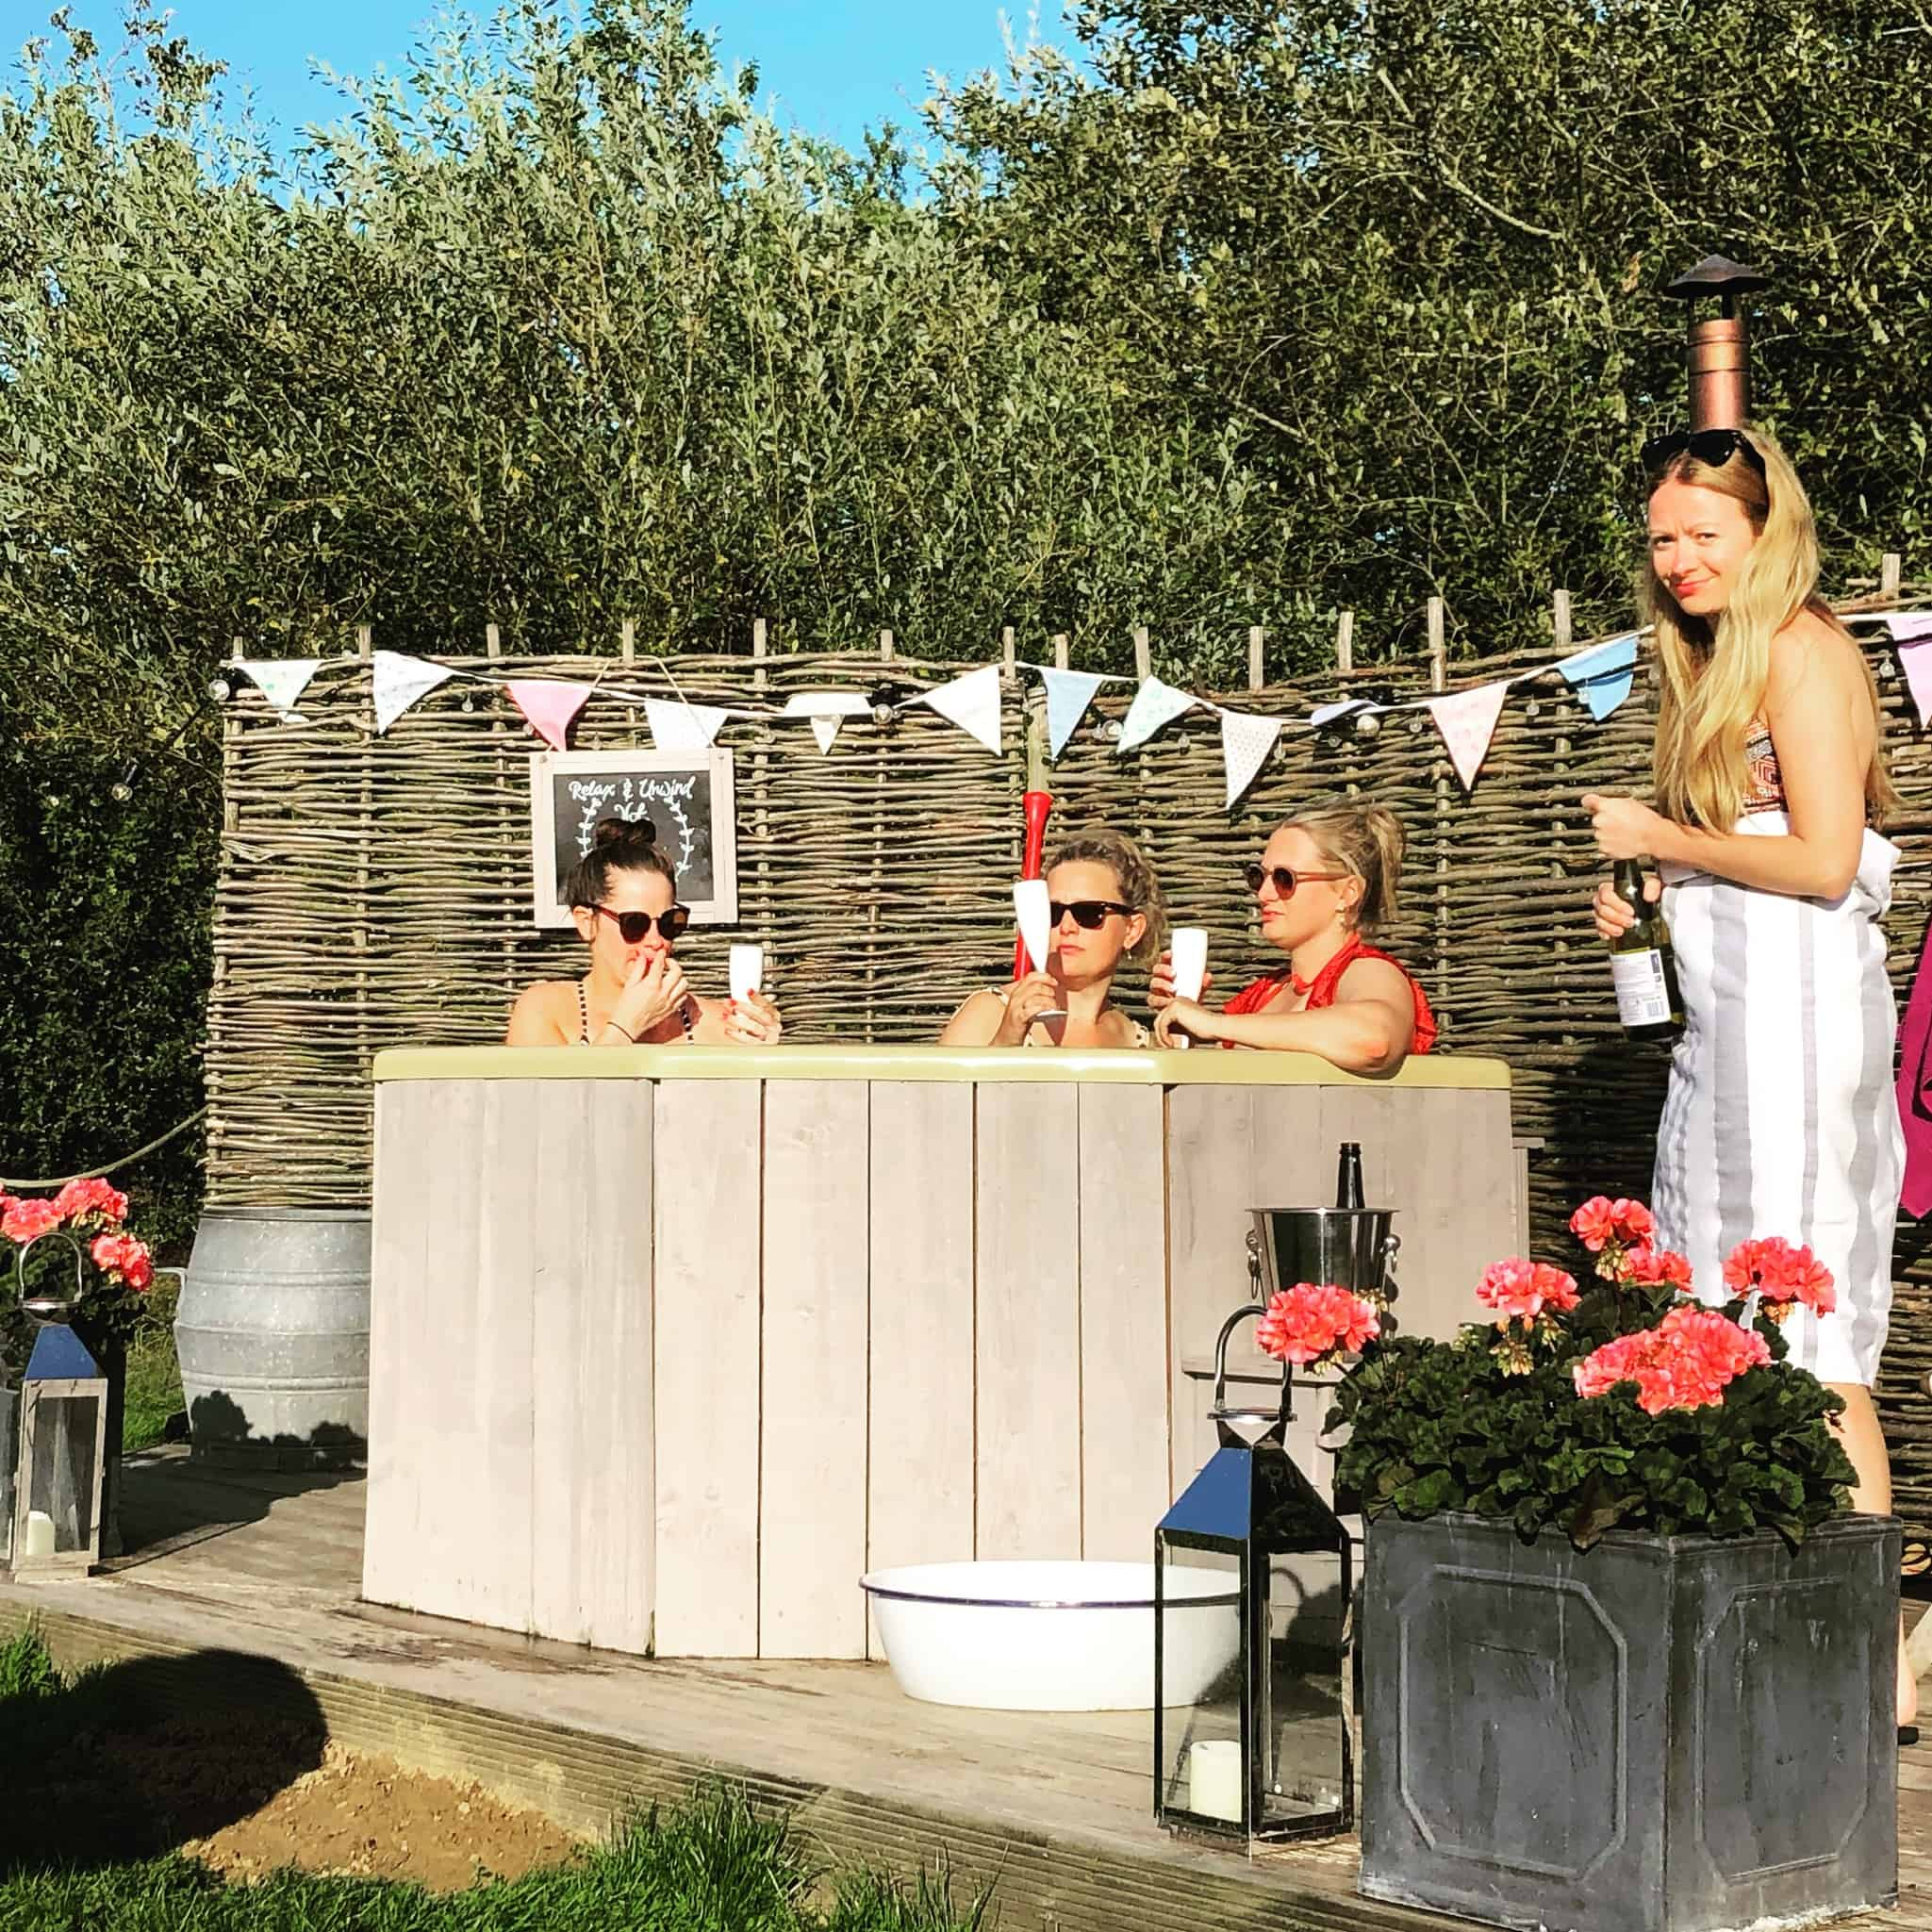 hen do with hot tub